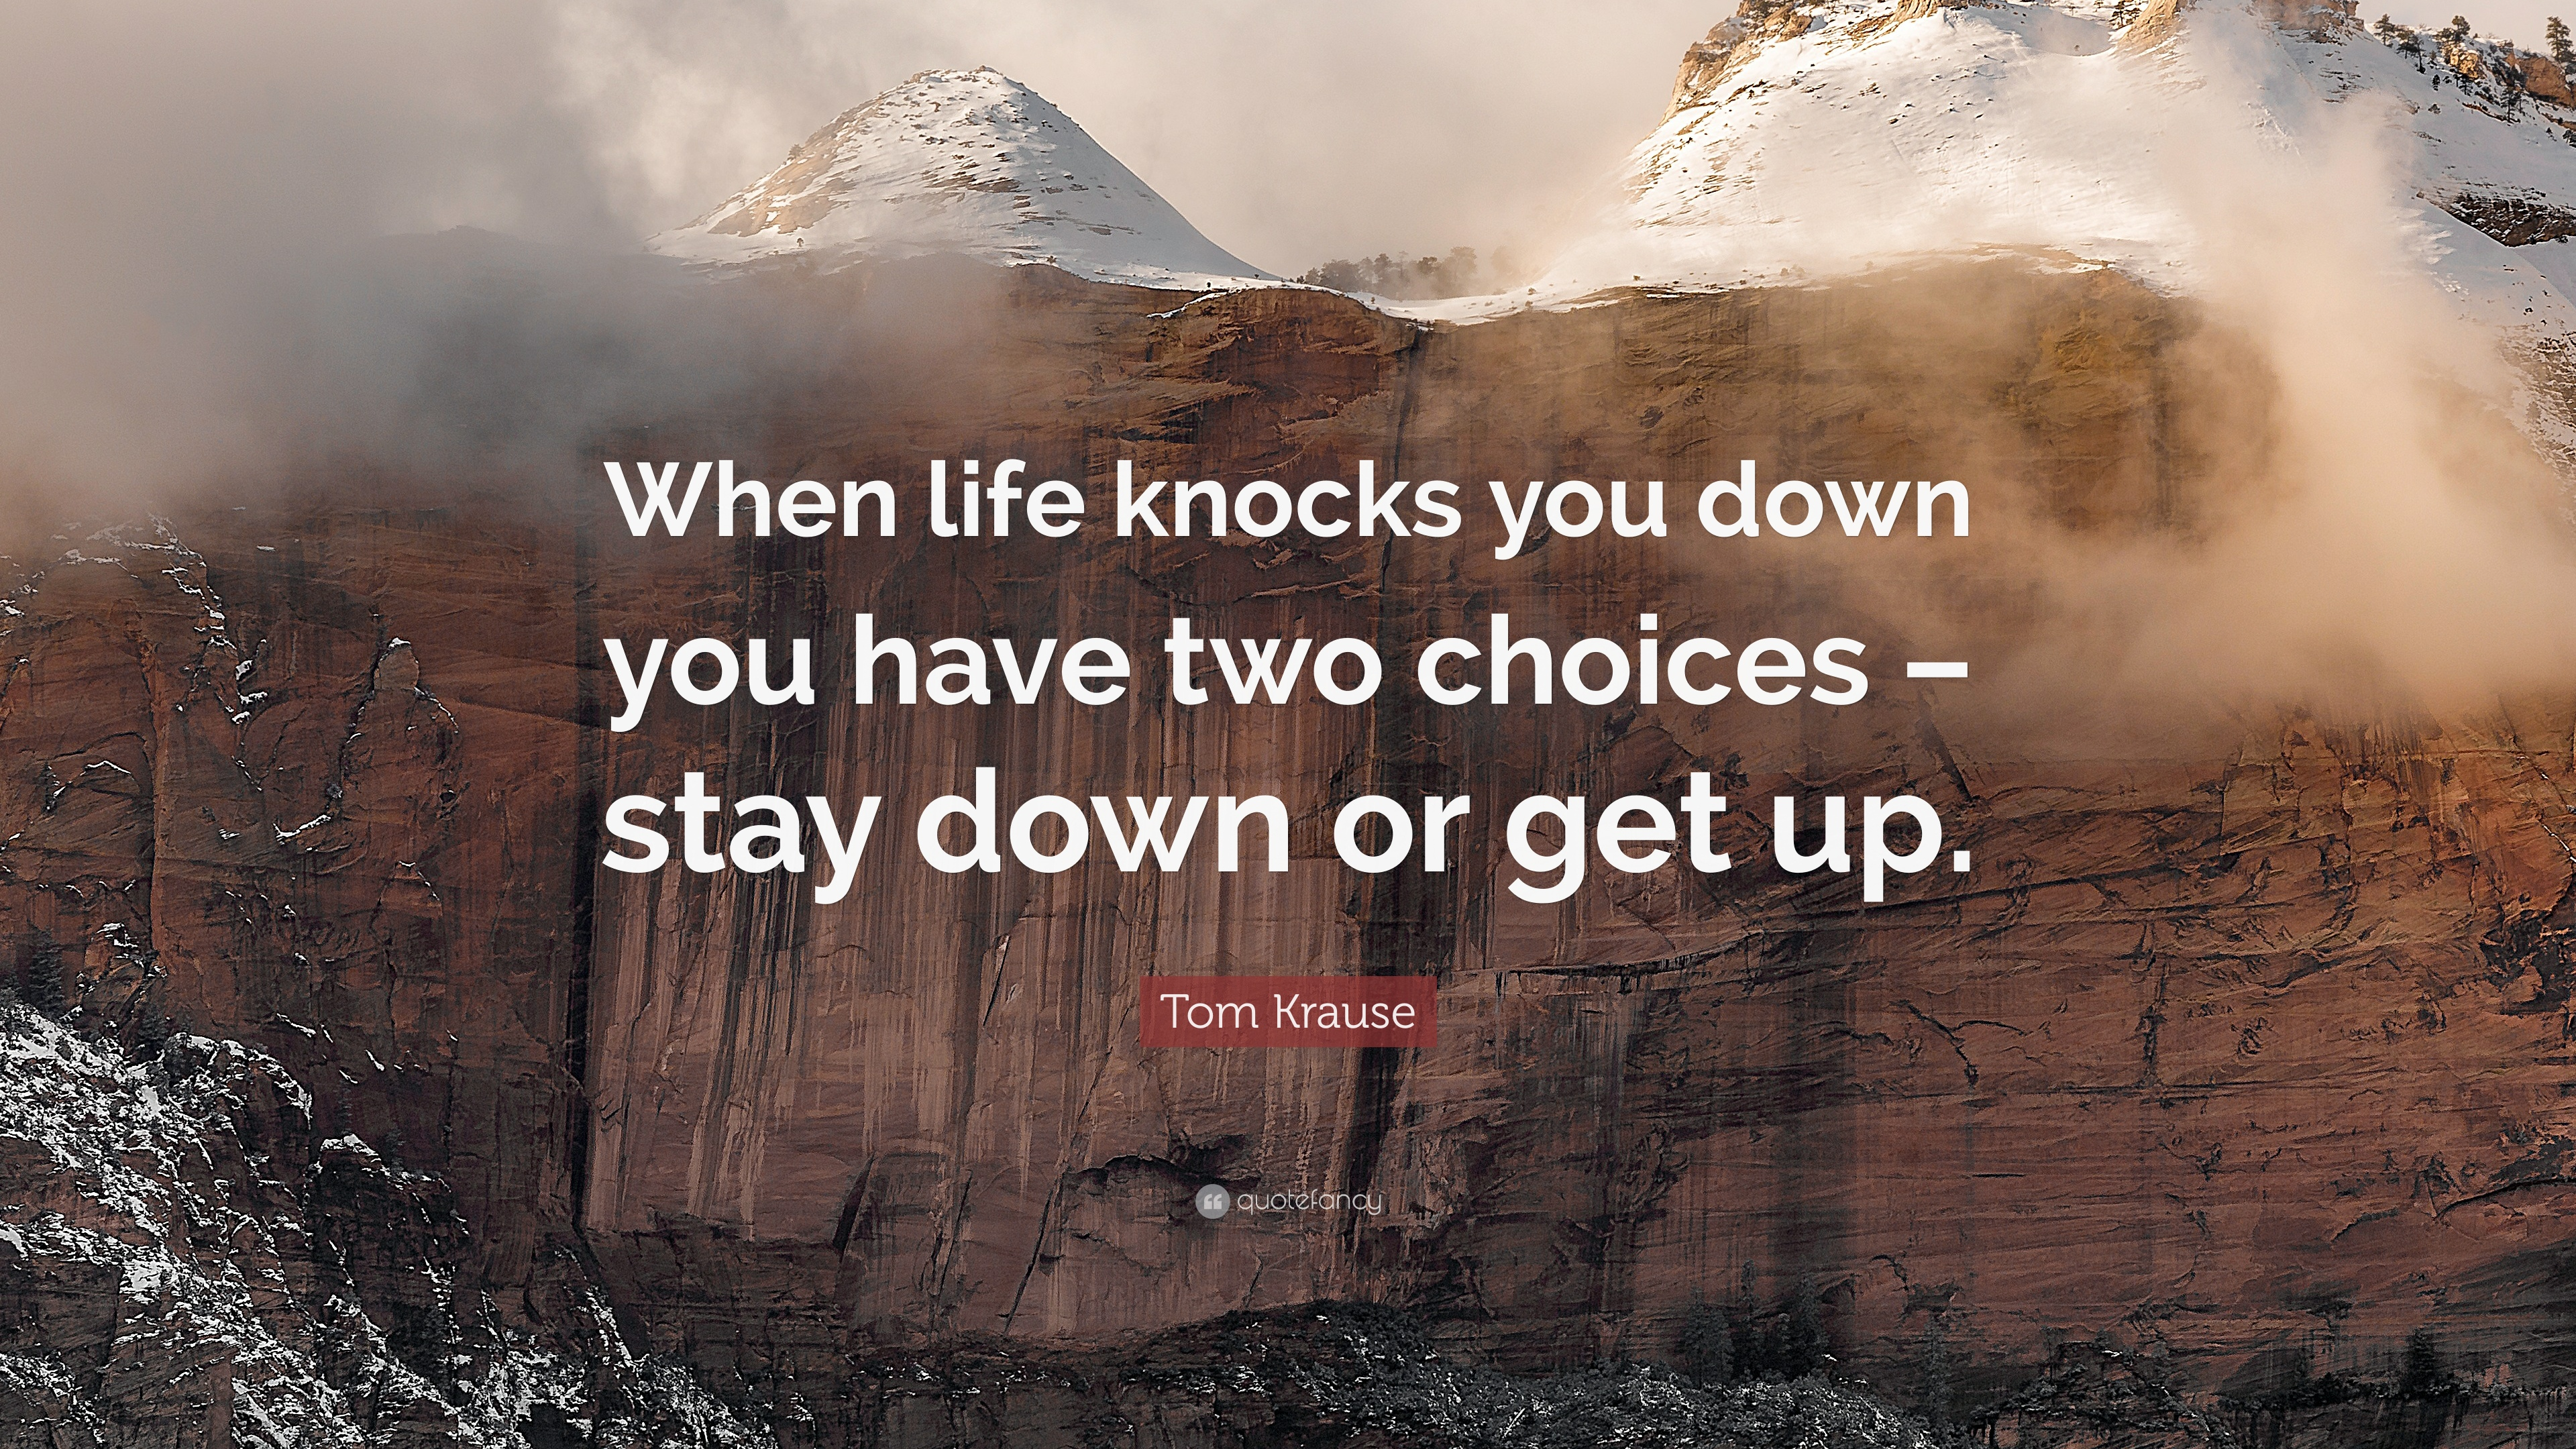 Tom Krause Quote When Life Knocks You Down You Have Two Choices